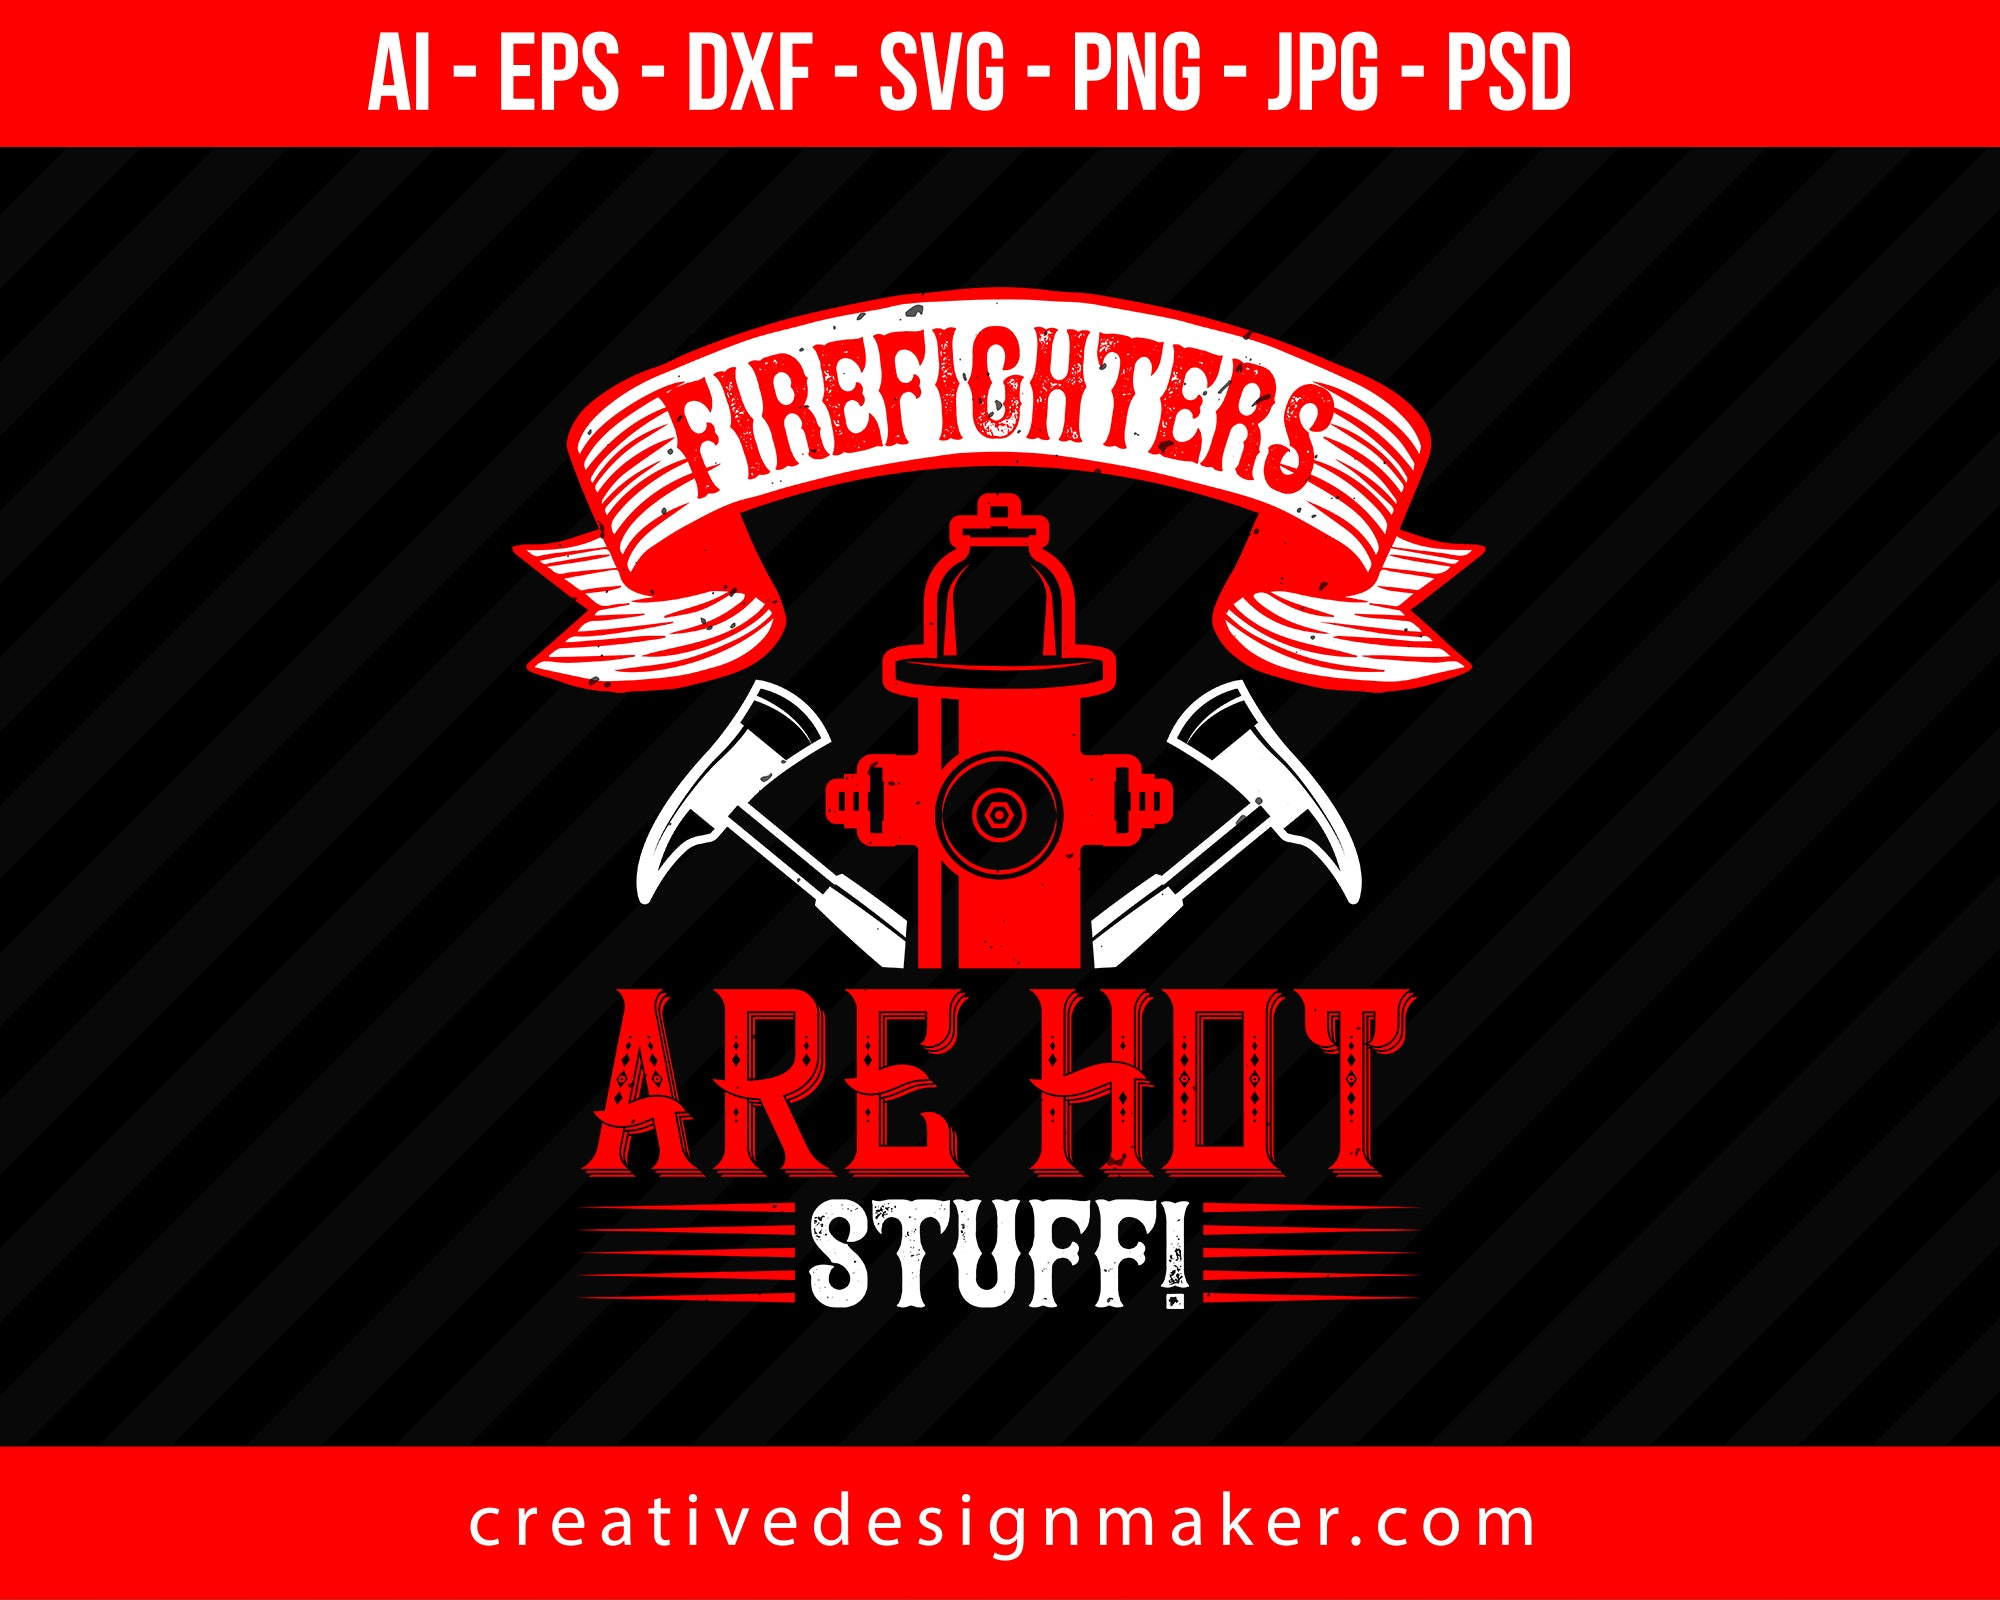 Firefighters Are Hot Stuff! Print Ready Editable T-Shirt SVG Design!